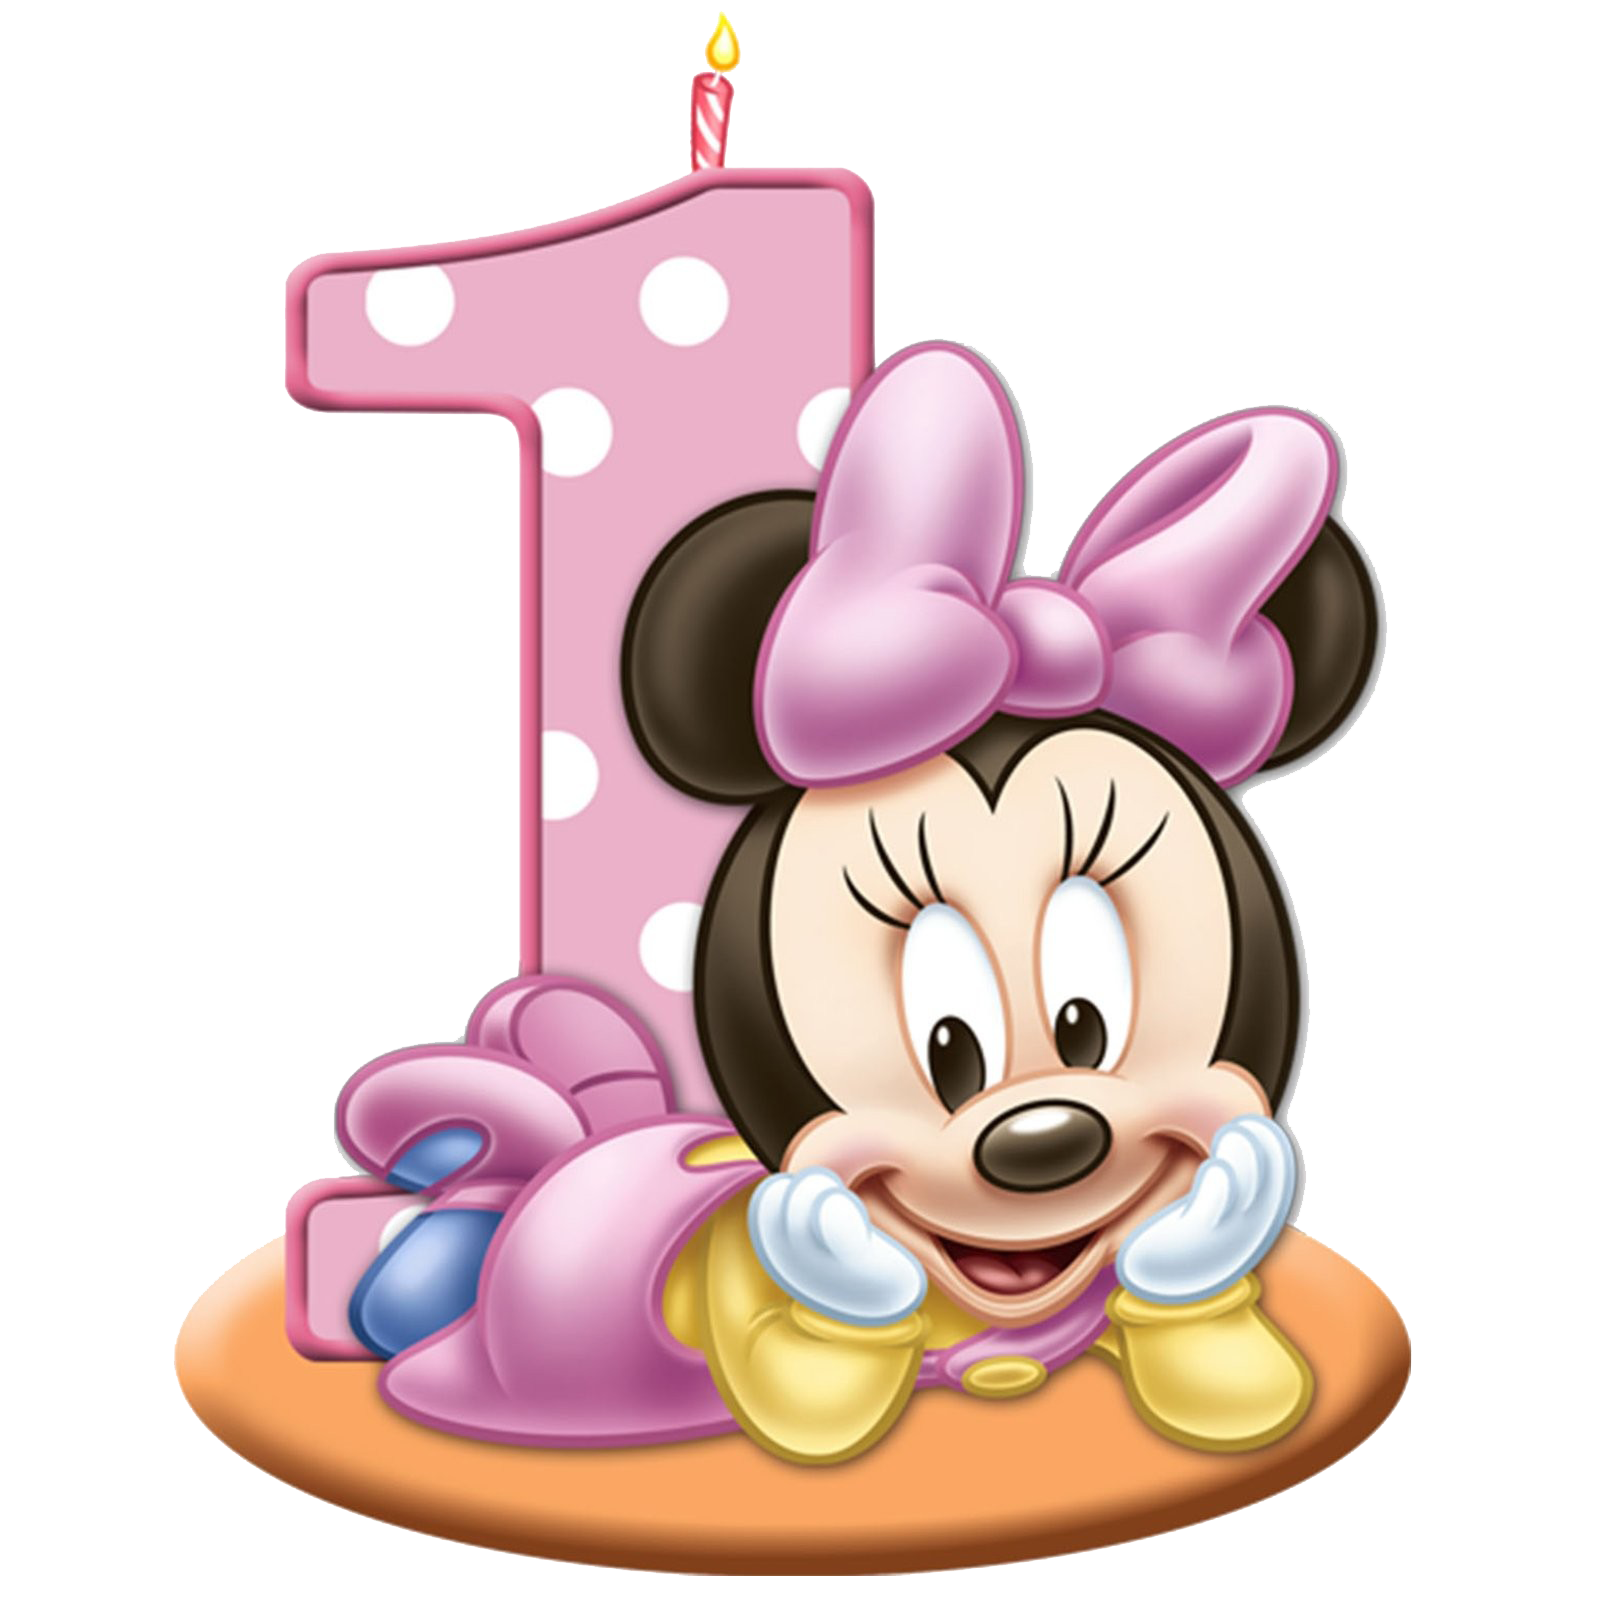 Mickey mouse and minnie with crown clipart clipart free library Minnie-Mouse-PNG.png (1600×1600) | Cumpleaños | Pinterest | Minnie mouse clipart free library